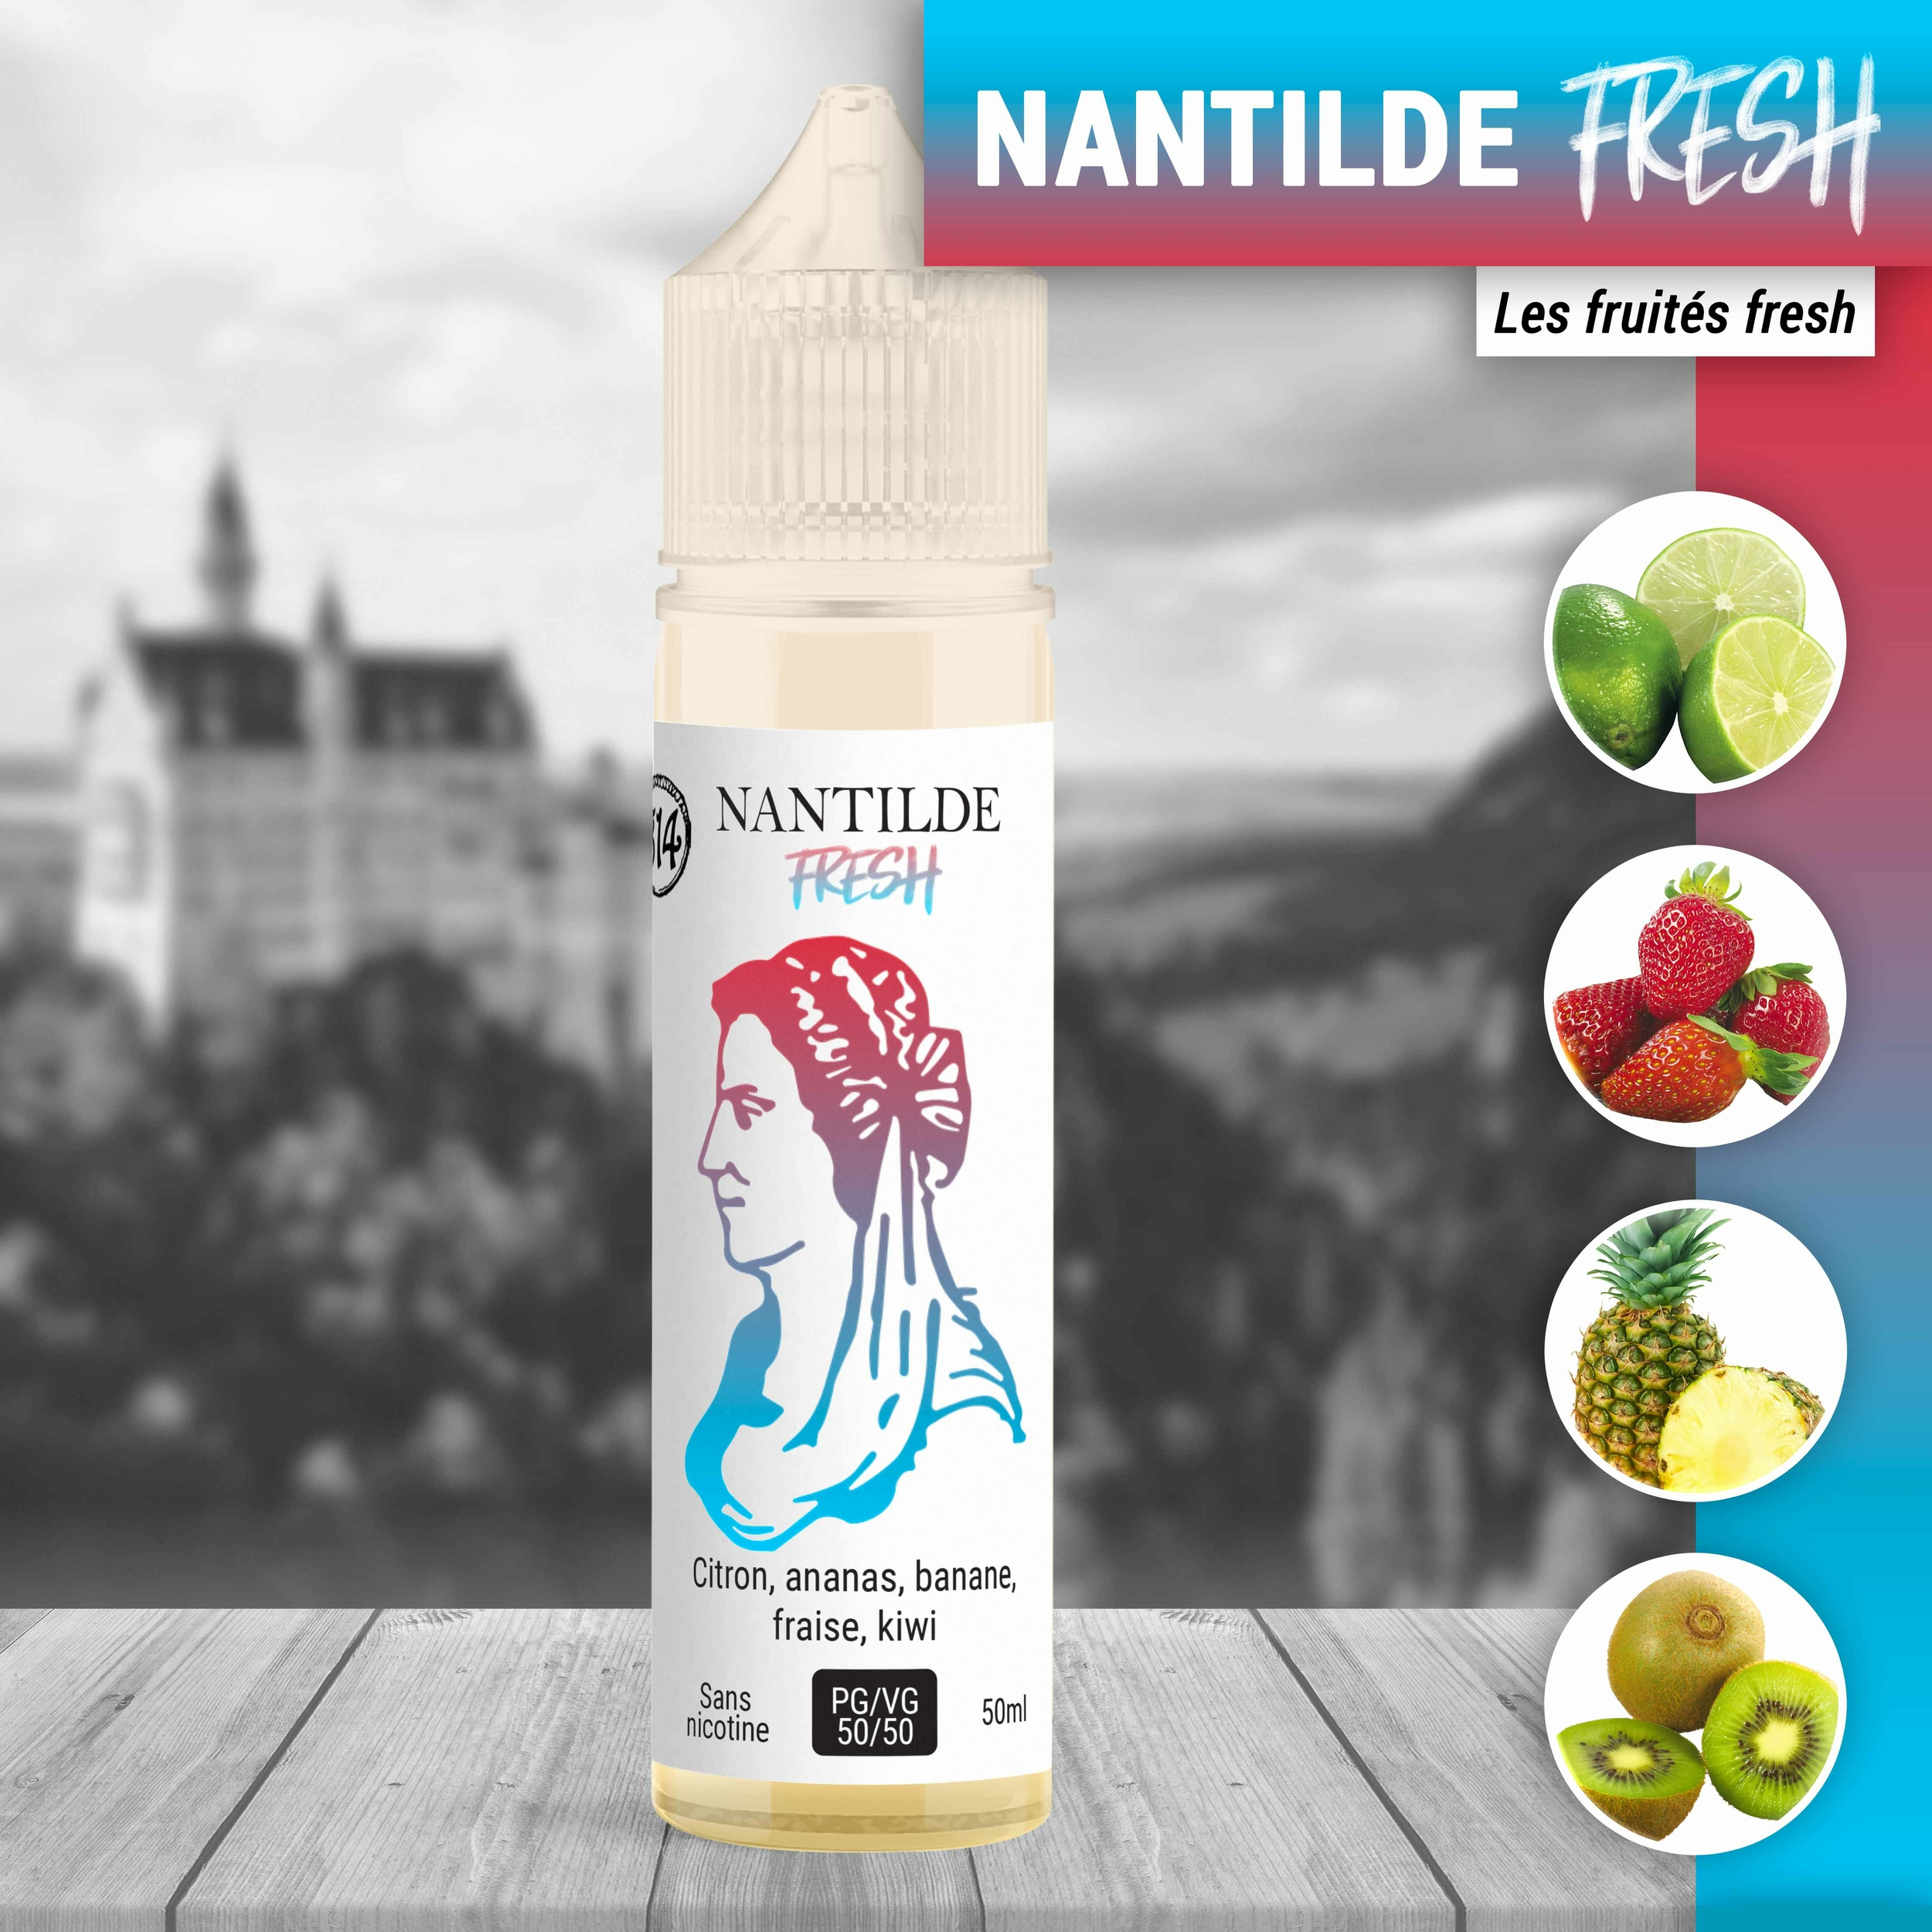 Nantilde fresh 50ml à booster